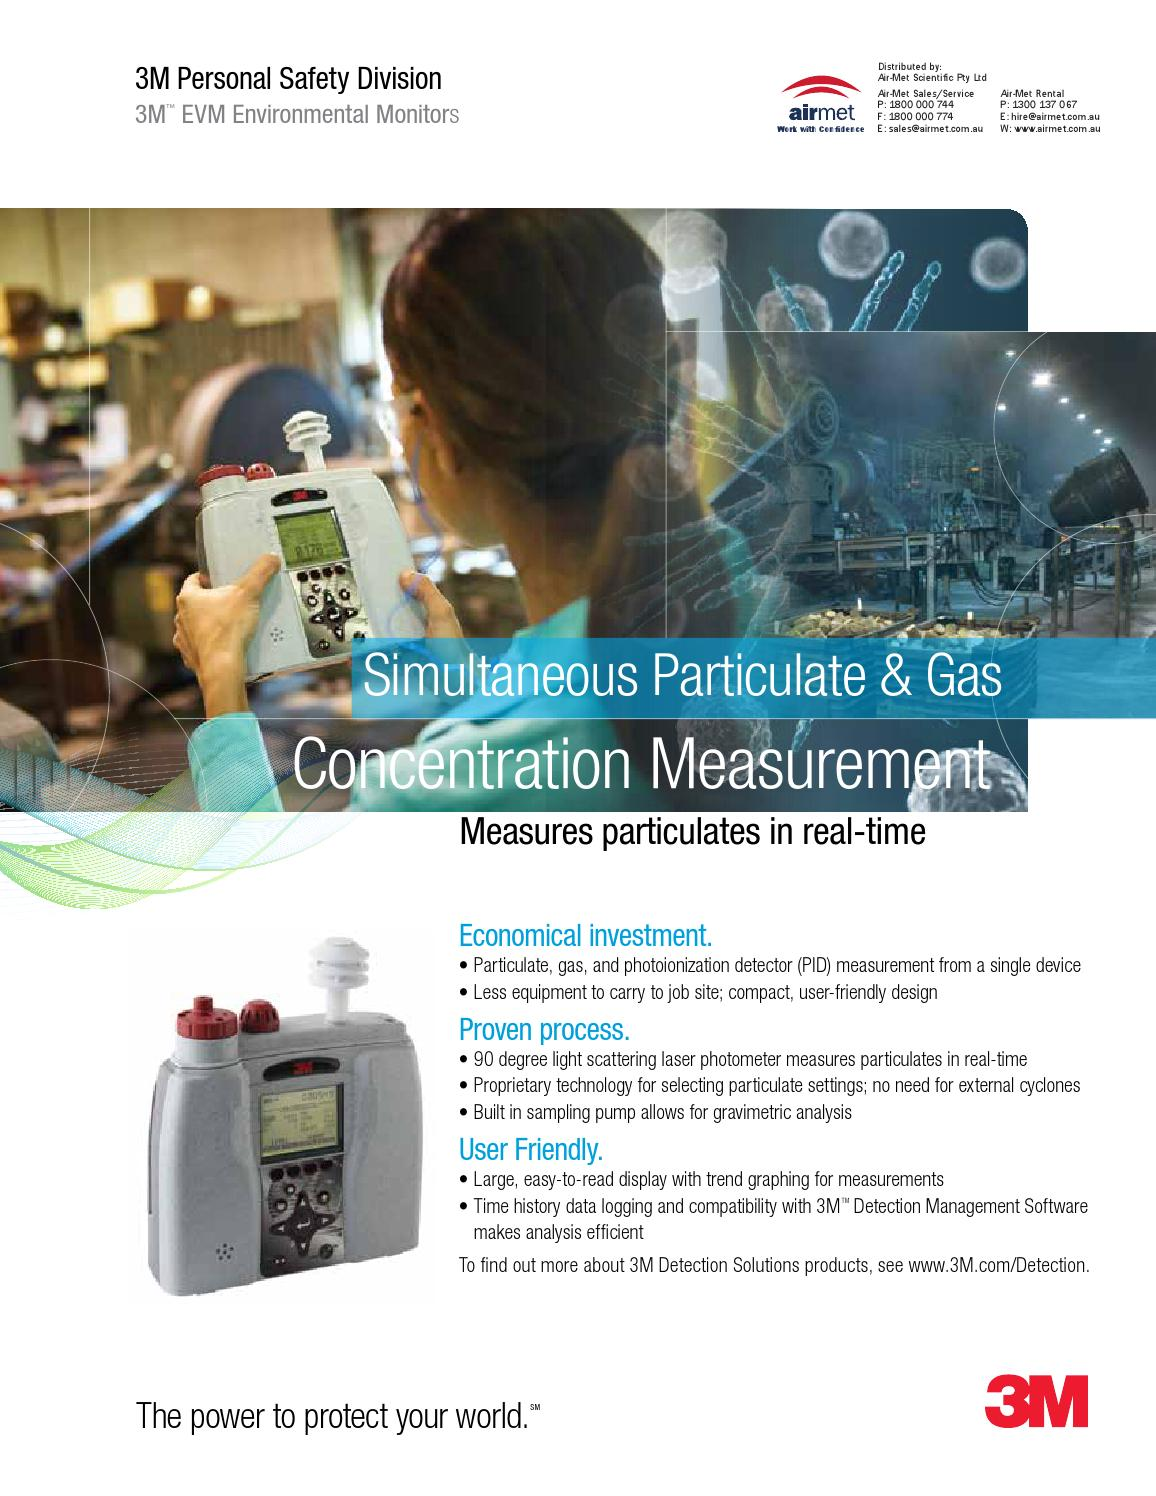 3M EVM Environmental Monitoring Specifications by Air-Met